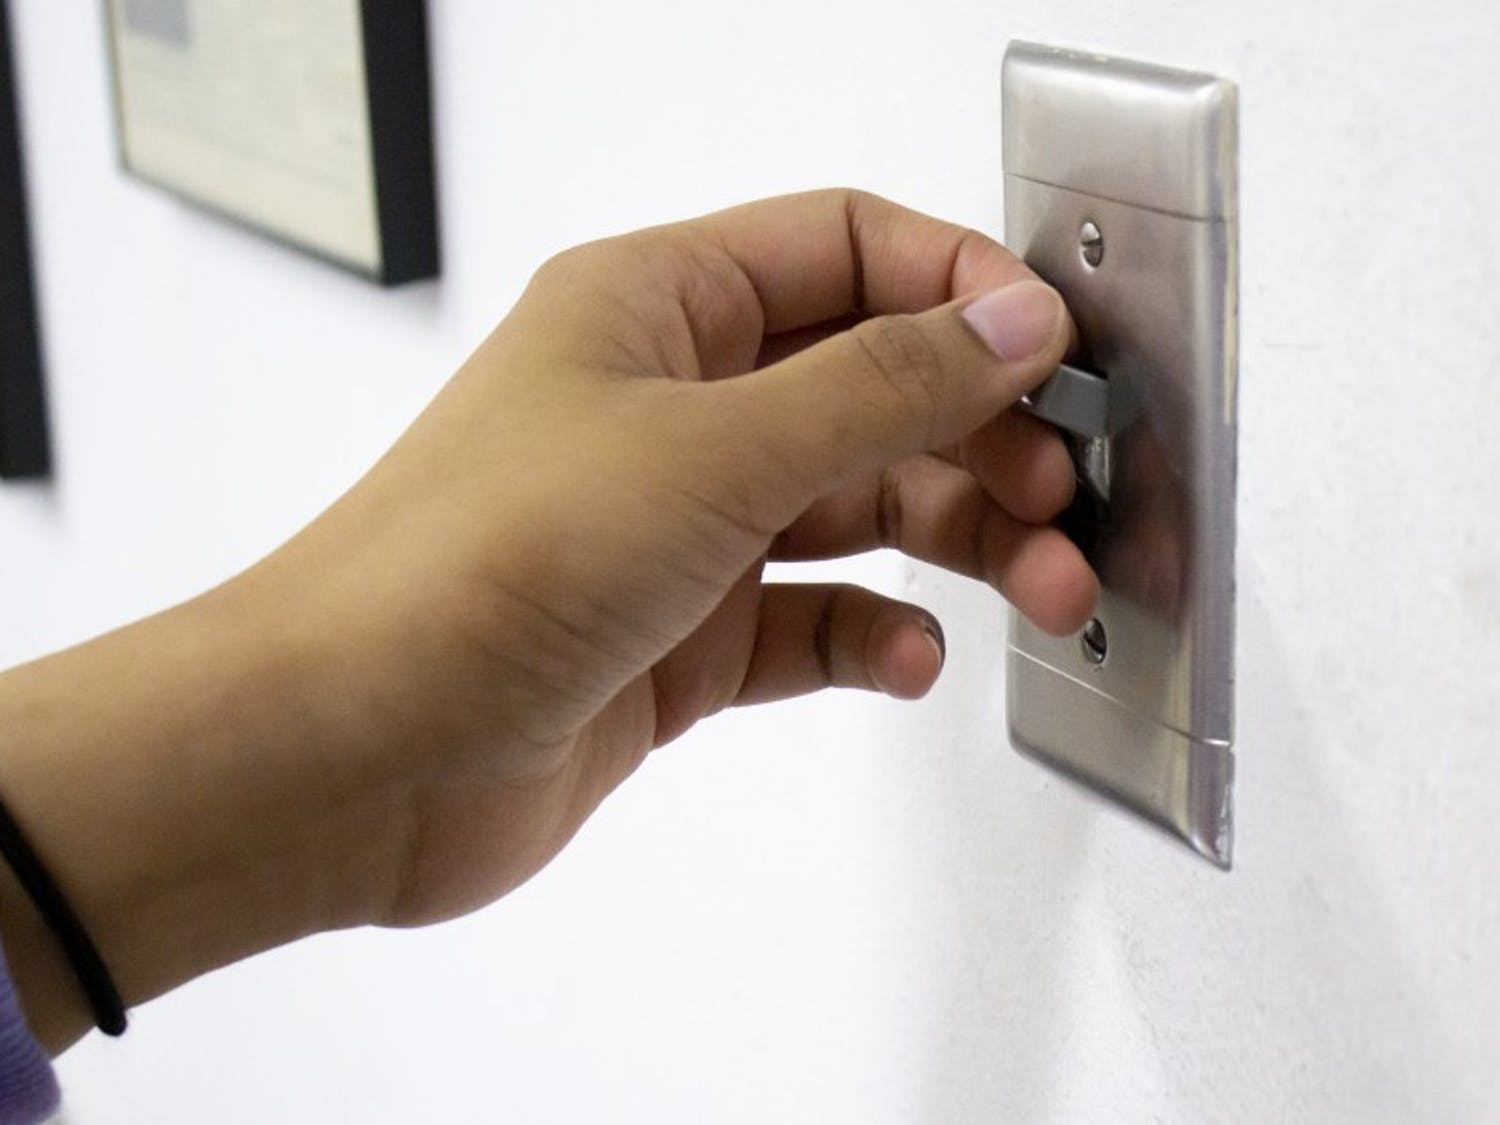 UW-Madison researchers find that something as simple as turning off a light could save a life in new energy conservation study.